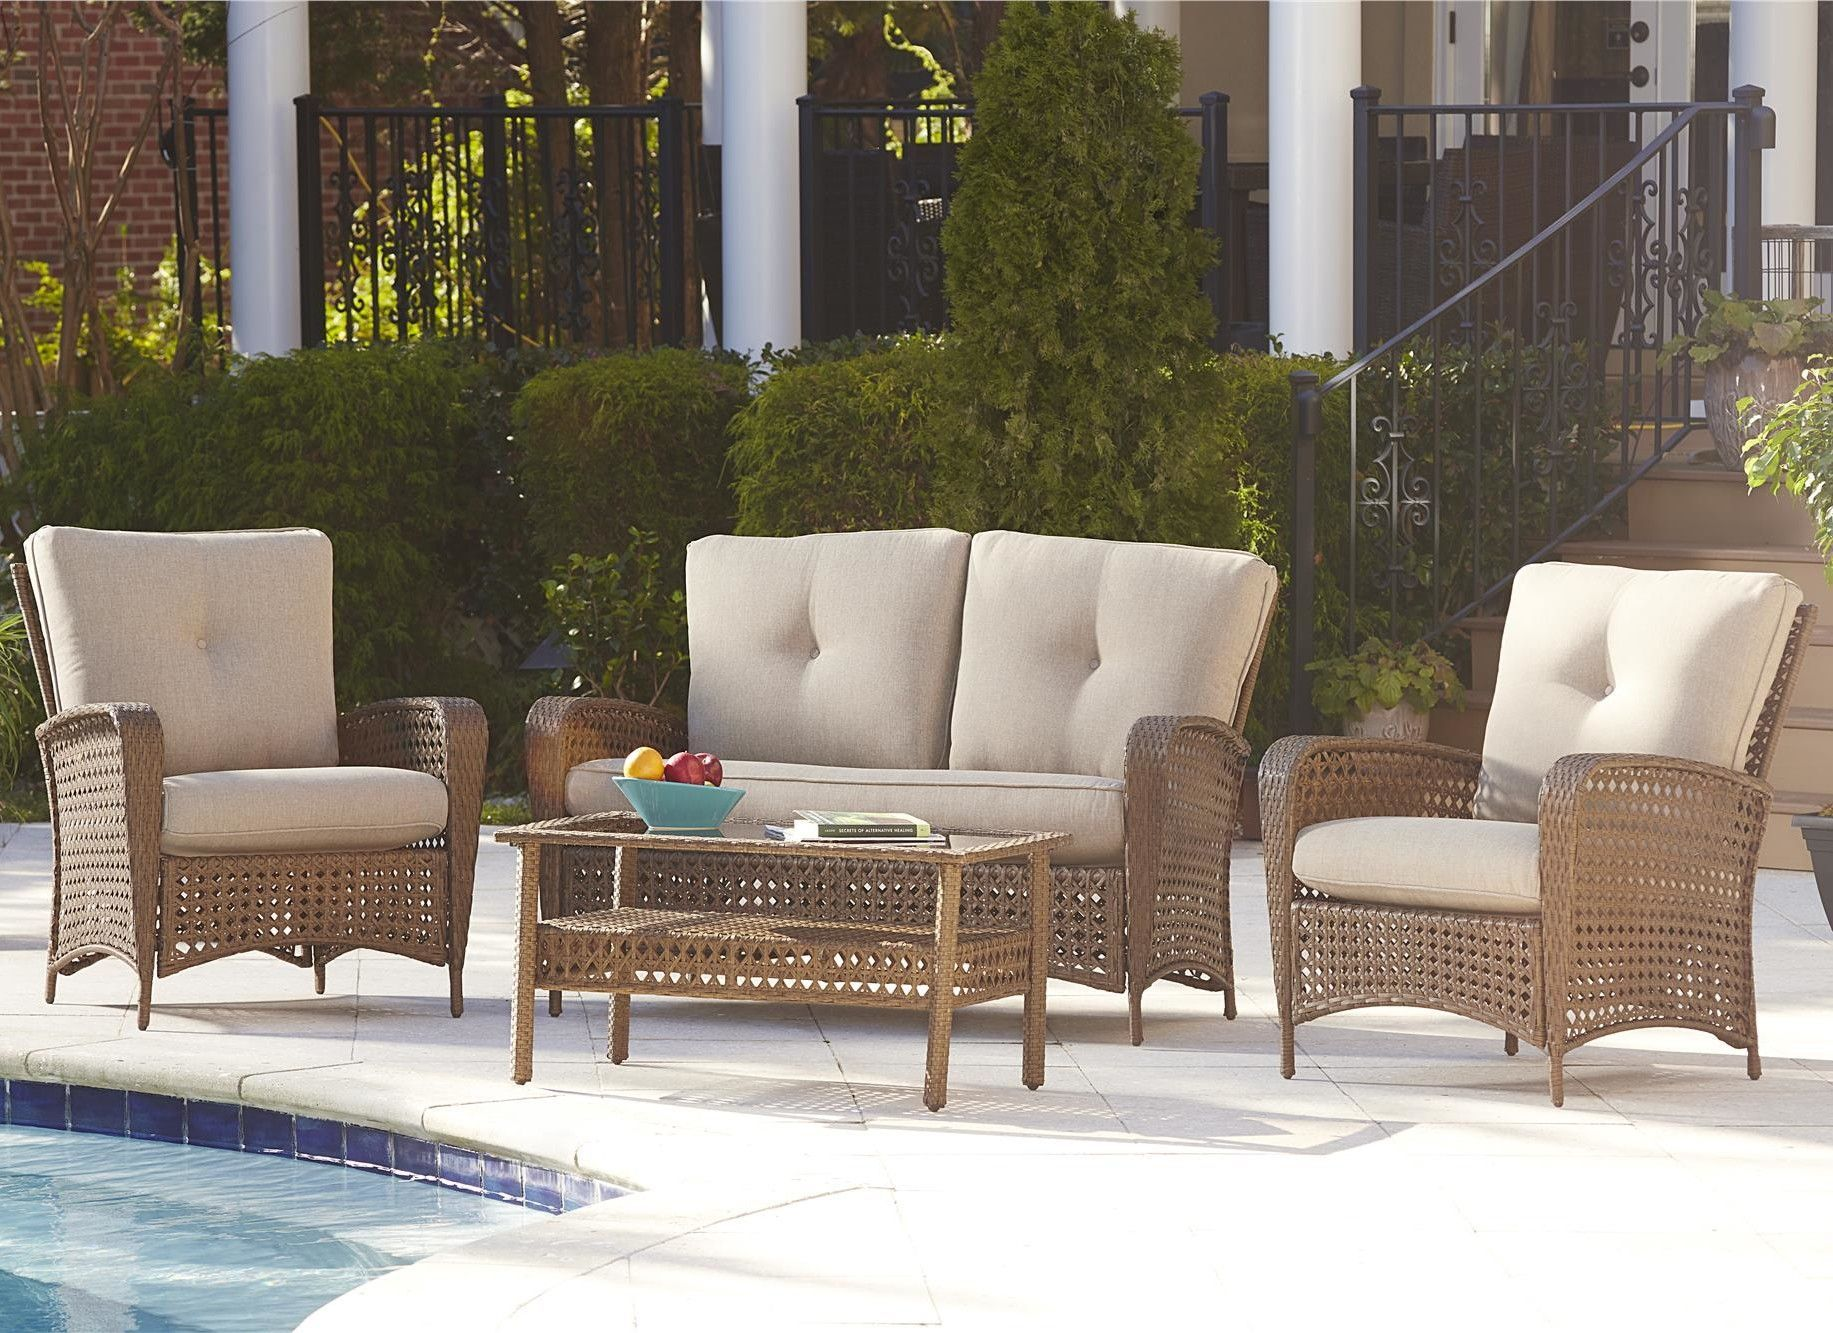 Marathon Conversation 4 Piece Seating Group With Cushions